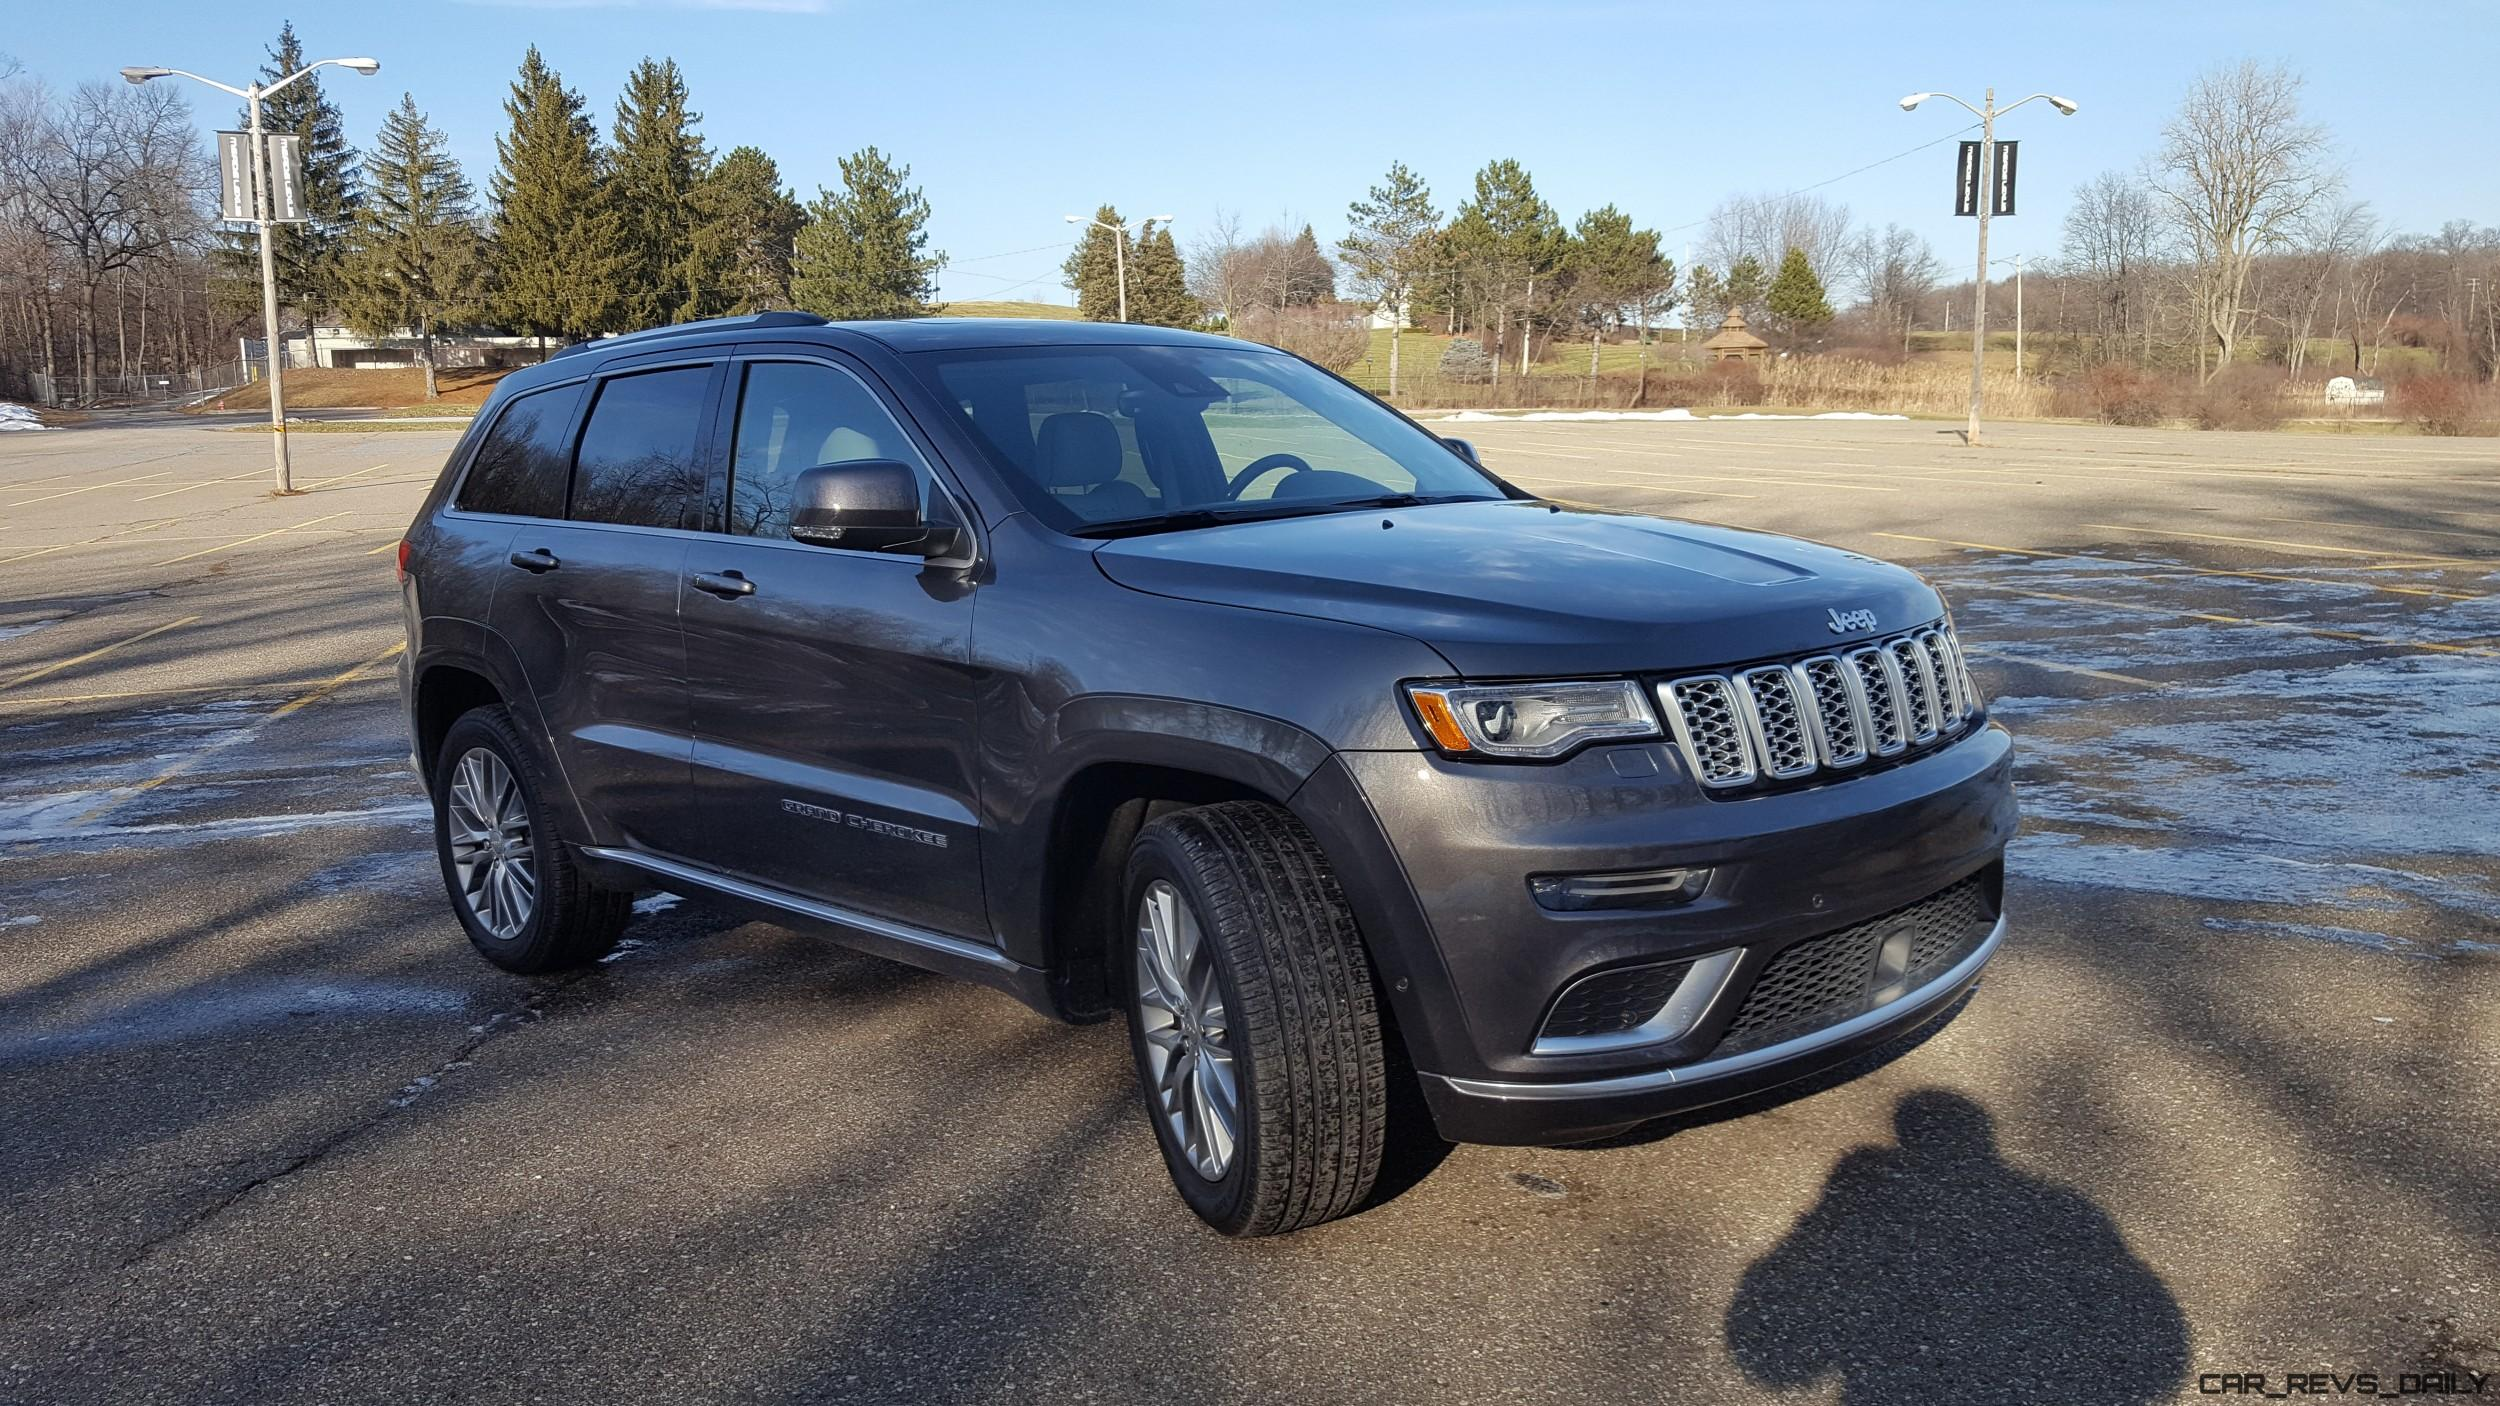 2017 jeep grand cherokee summit road test review by carl malek car revs. Black Bedroom Furniture Sets. Home Design Ideas